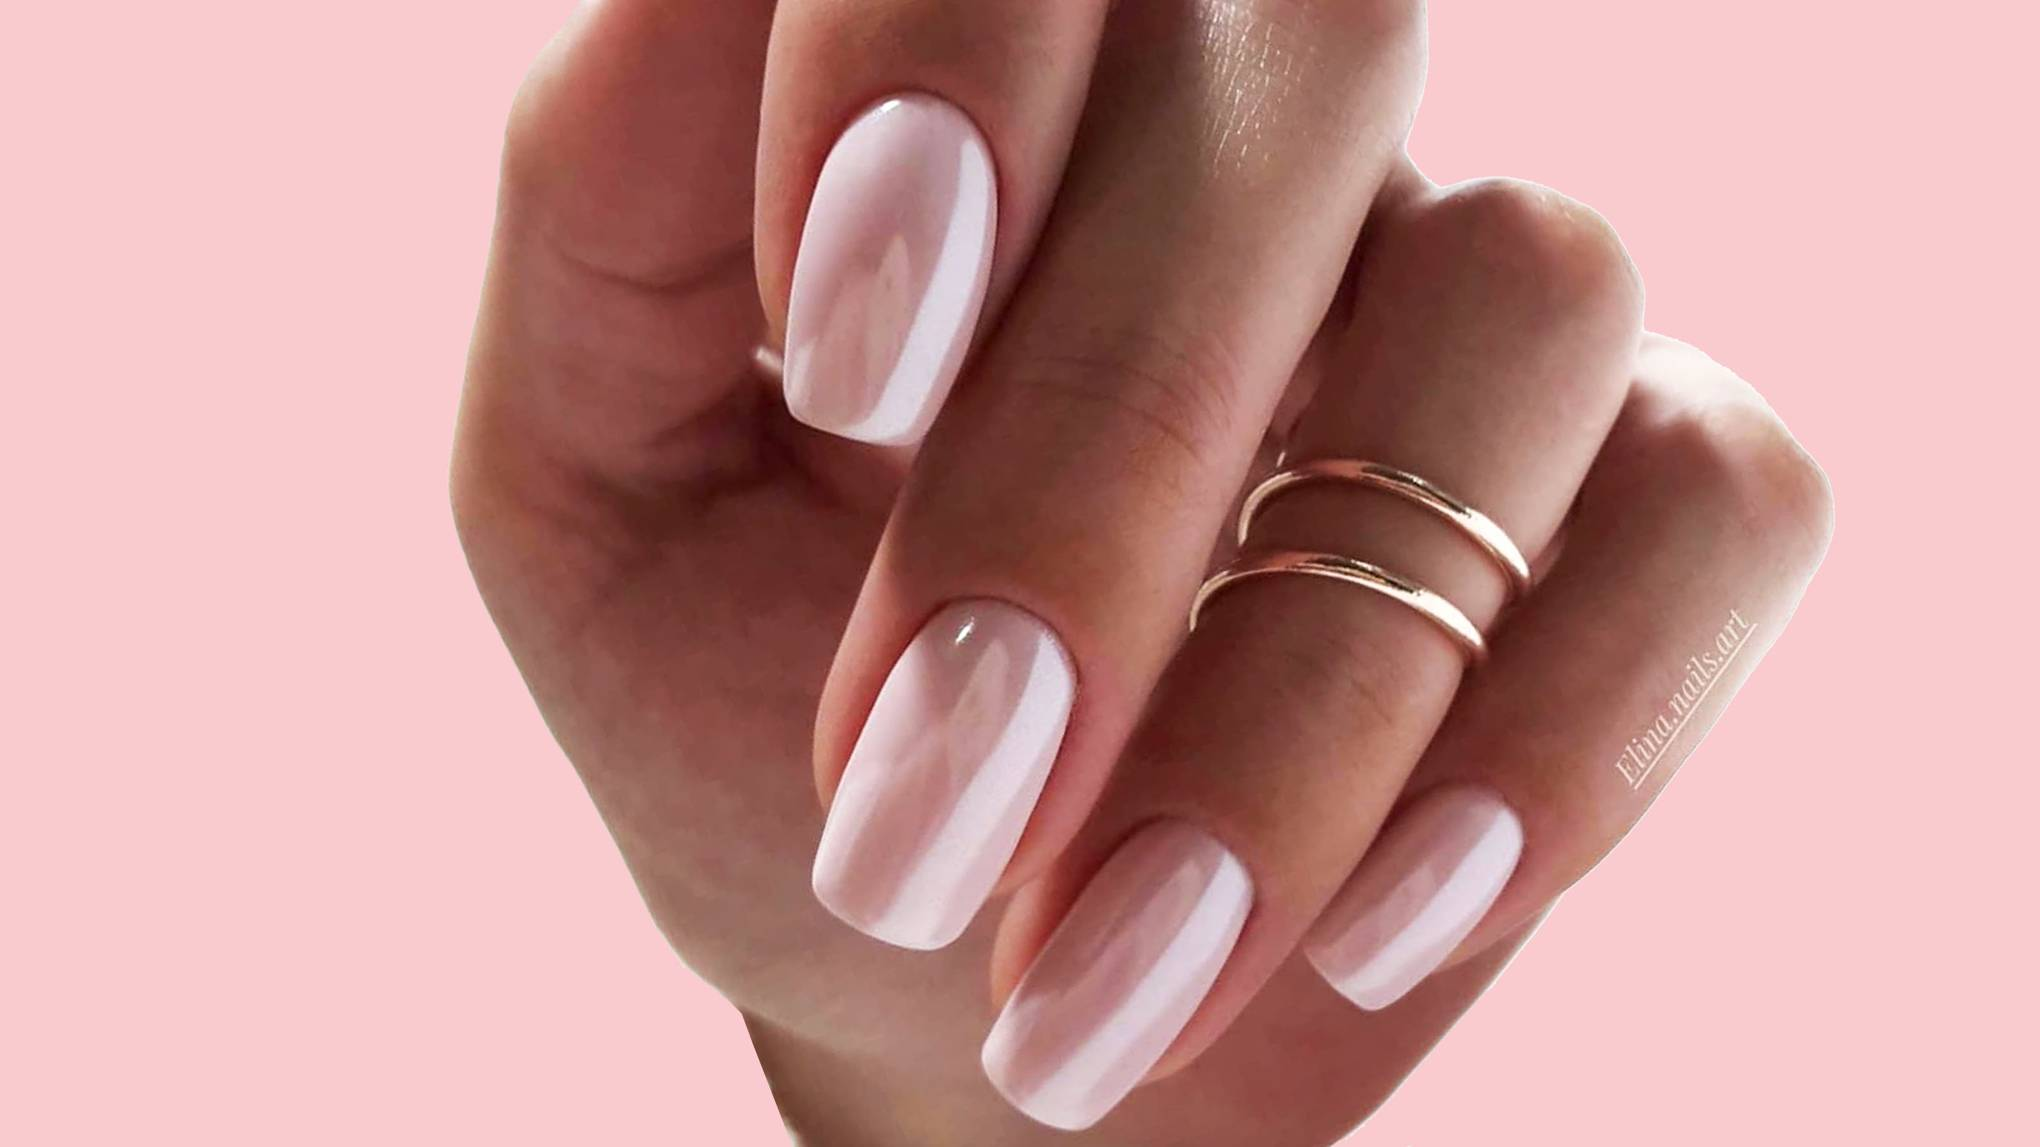 Guy's Guide On Girls Based On Their Nails